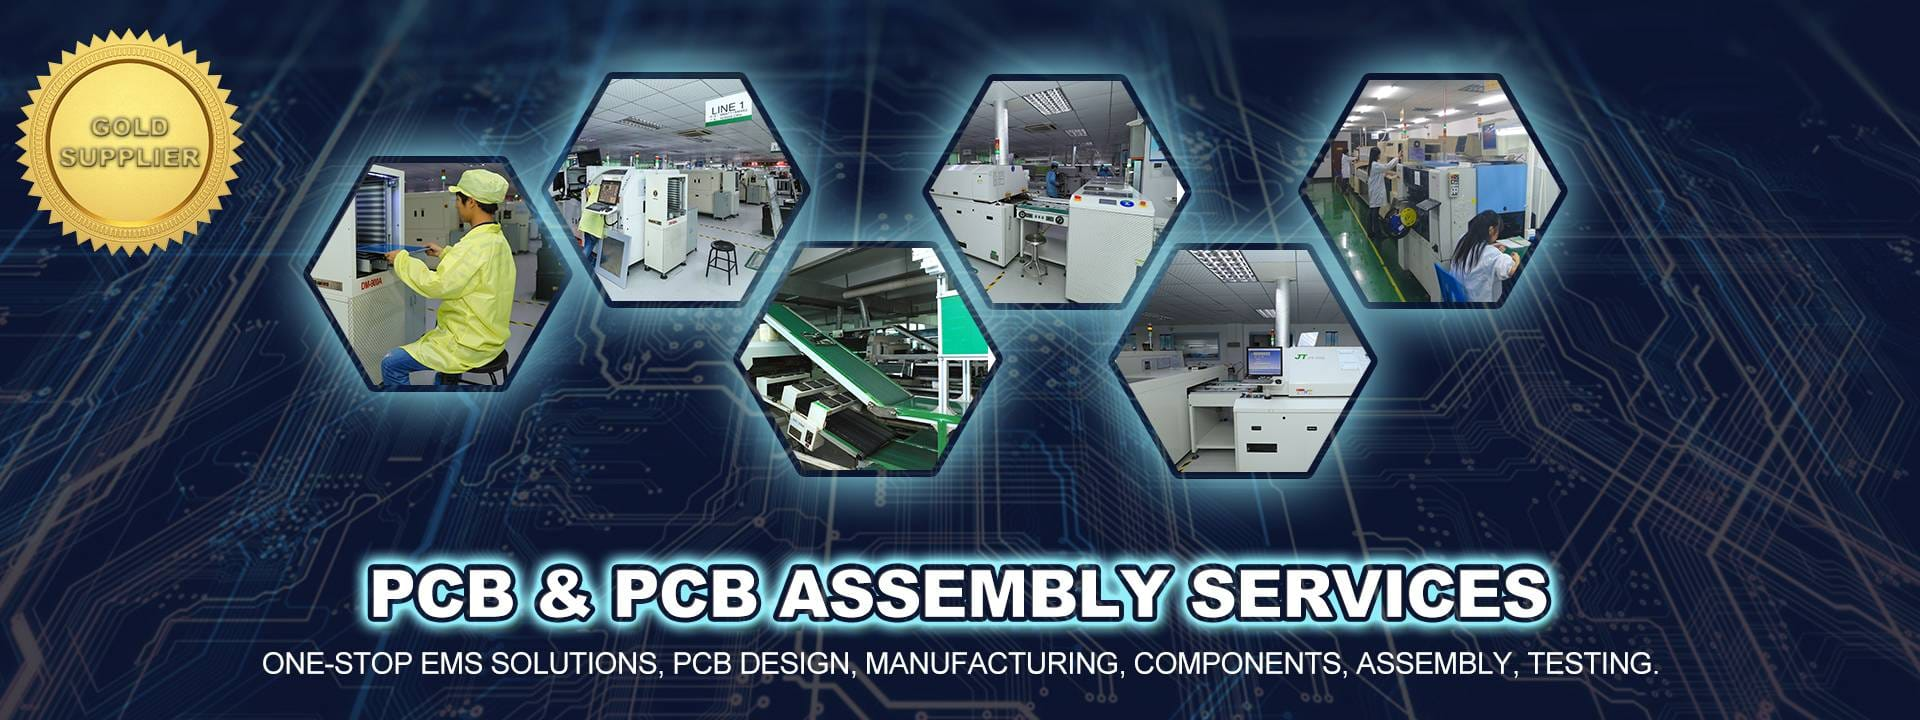 China PCB manufacturer and assembly servicer, with value-added services like design and components sourcing.